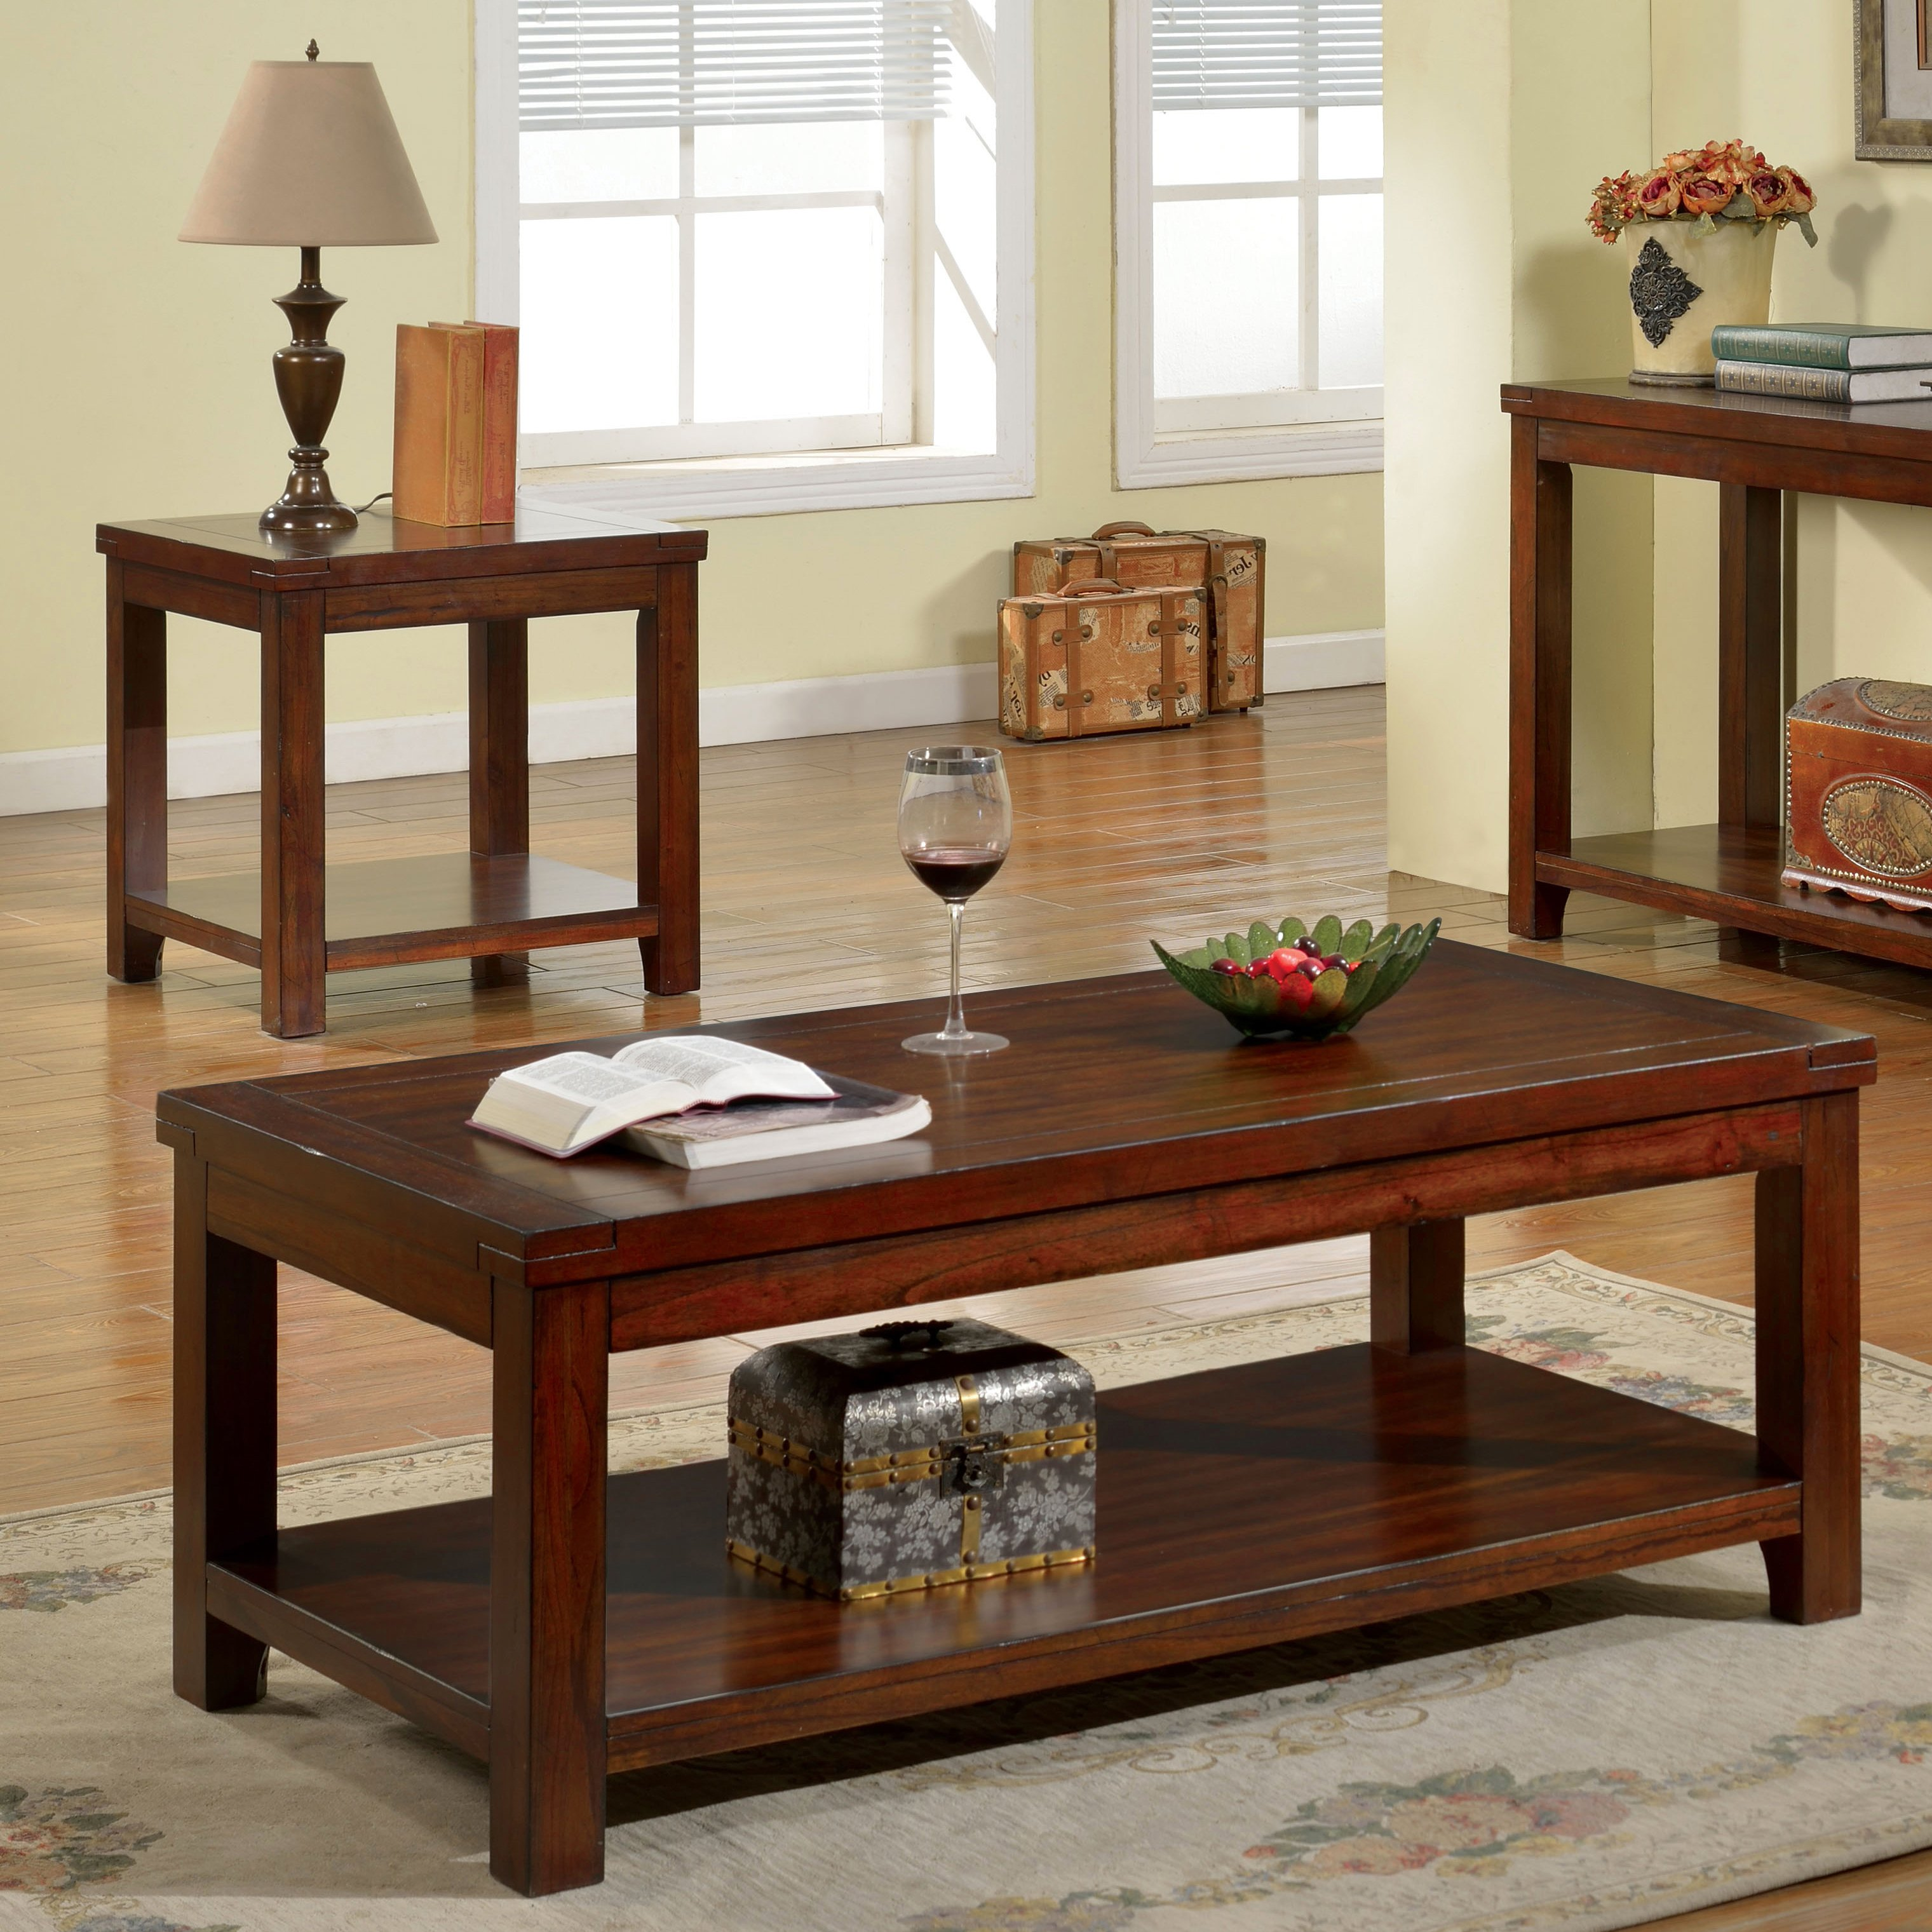 furniture america ambelle dark cherry piece accent table set wood free shipping today black dining pier one frames oak threshold trim narrow sofa console pottery barn rustic